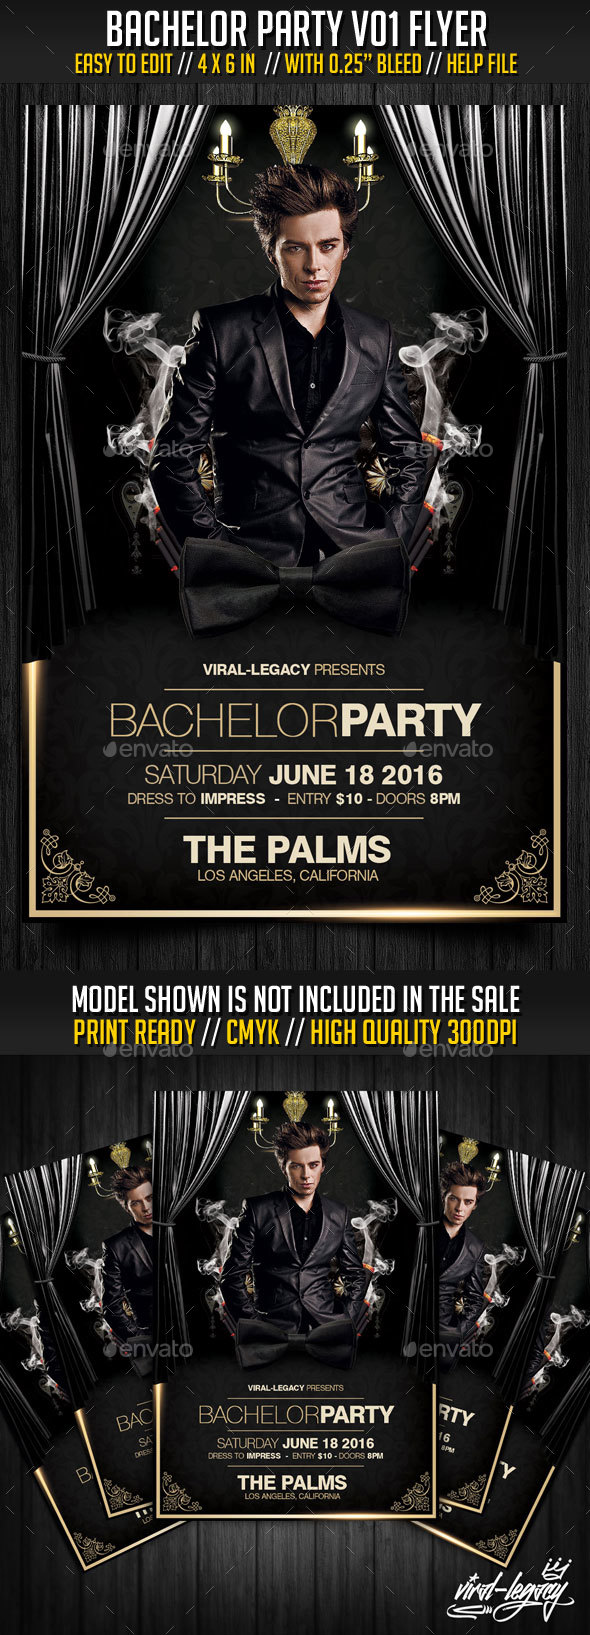 Bachelor Party V01 Flyer - Events Flyers